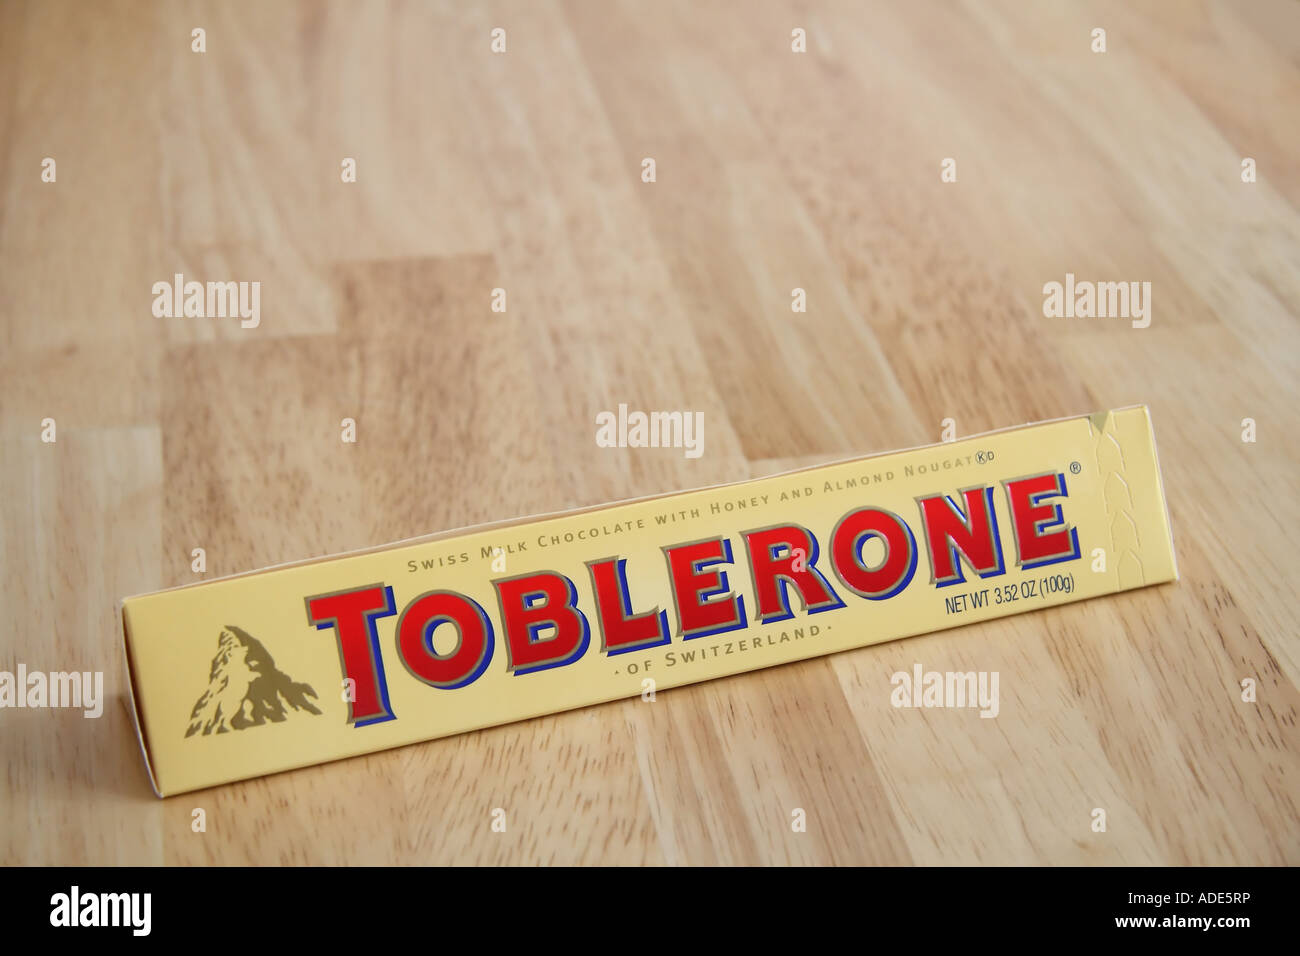 A Toblerone Swiss milk chocolate bar with honey and almond nougat ...